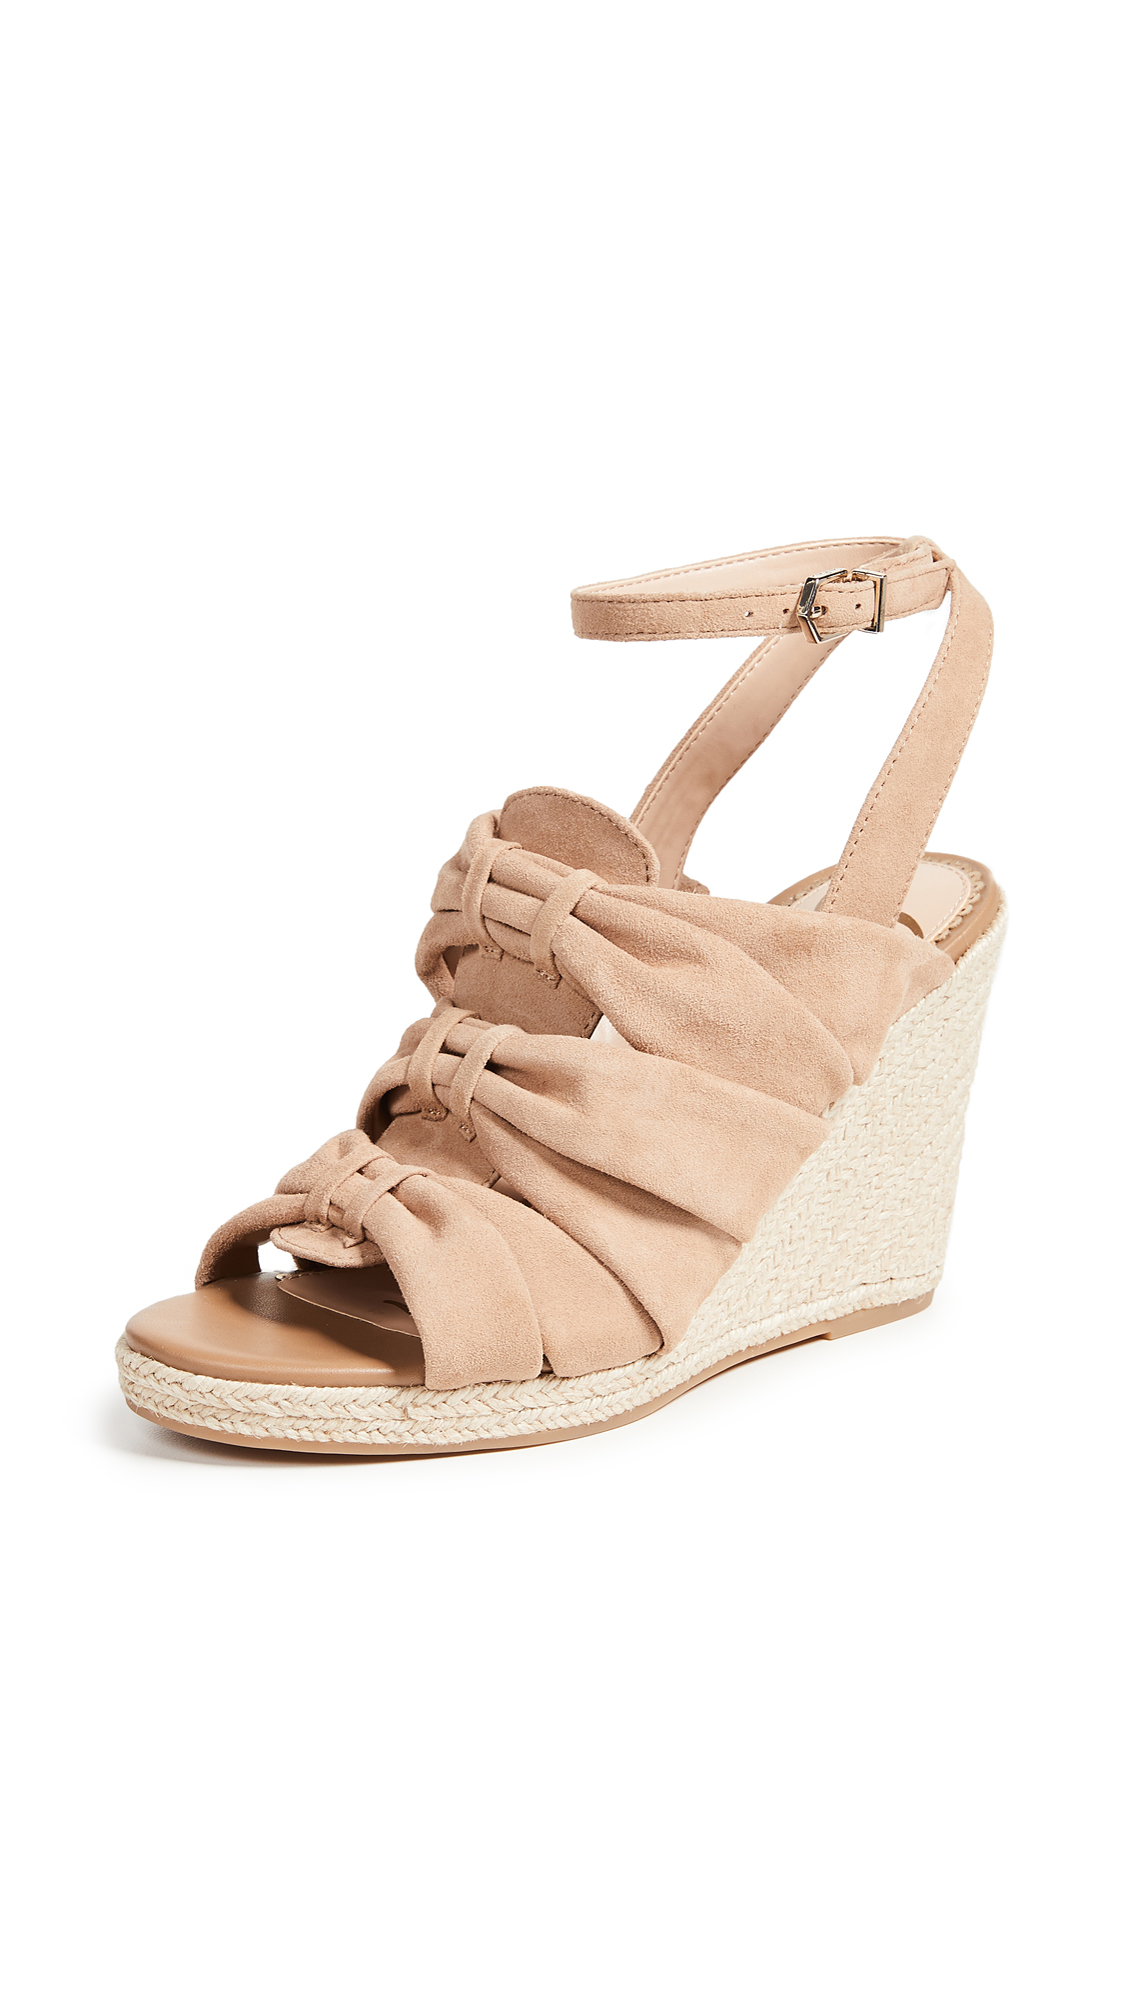 Sam Edelman Awan Wedge Sandals - Golden Caramel